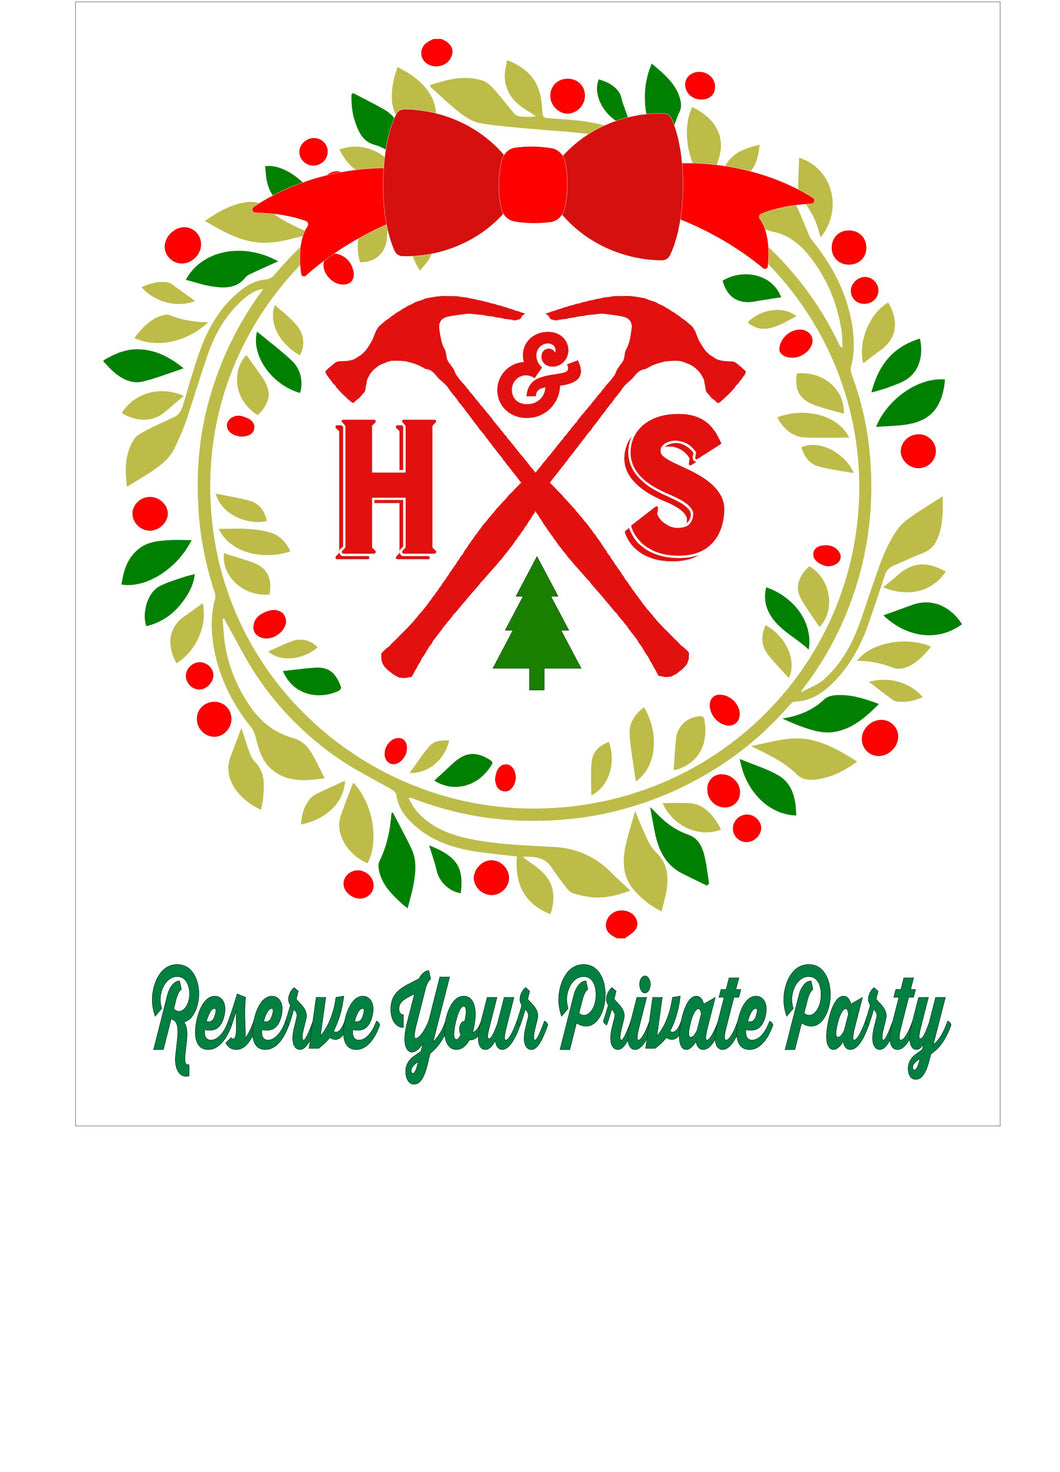 12/18/19 (6:30pm) Reserve Your Private Party Now!